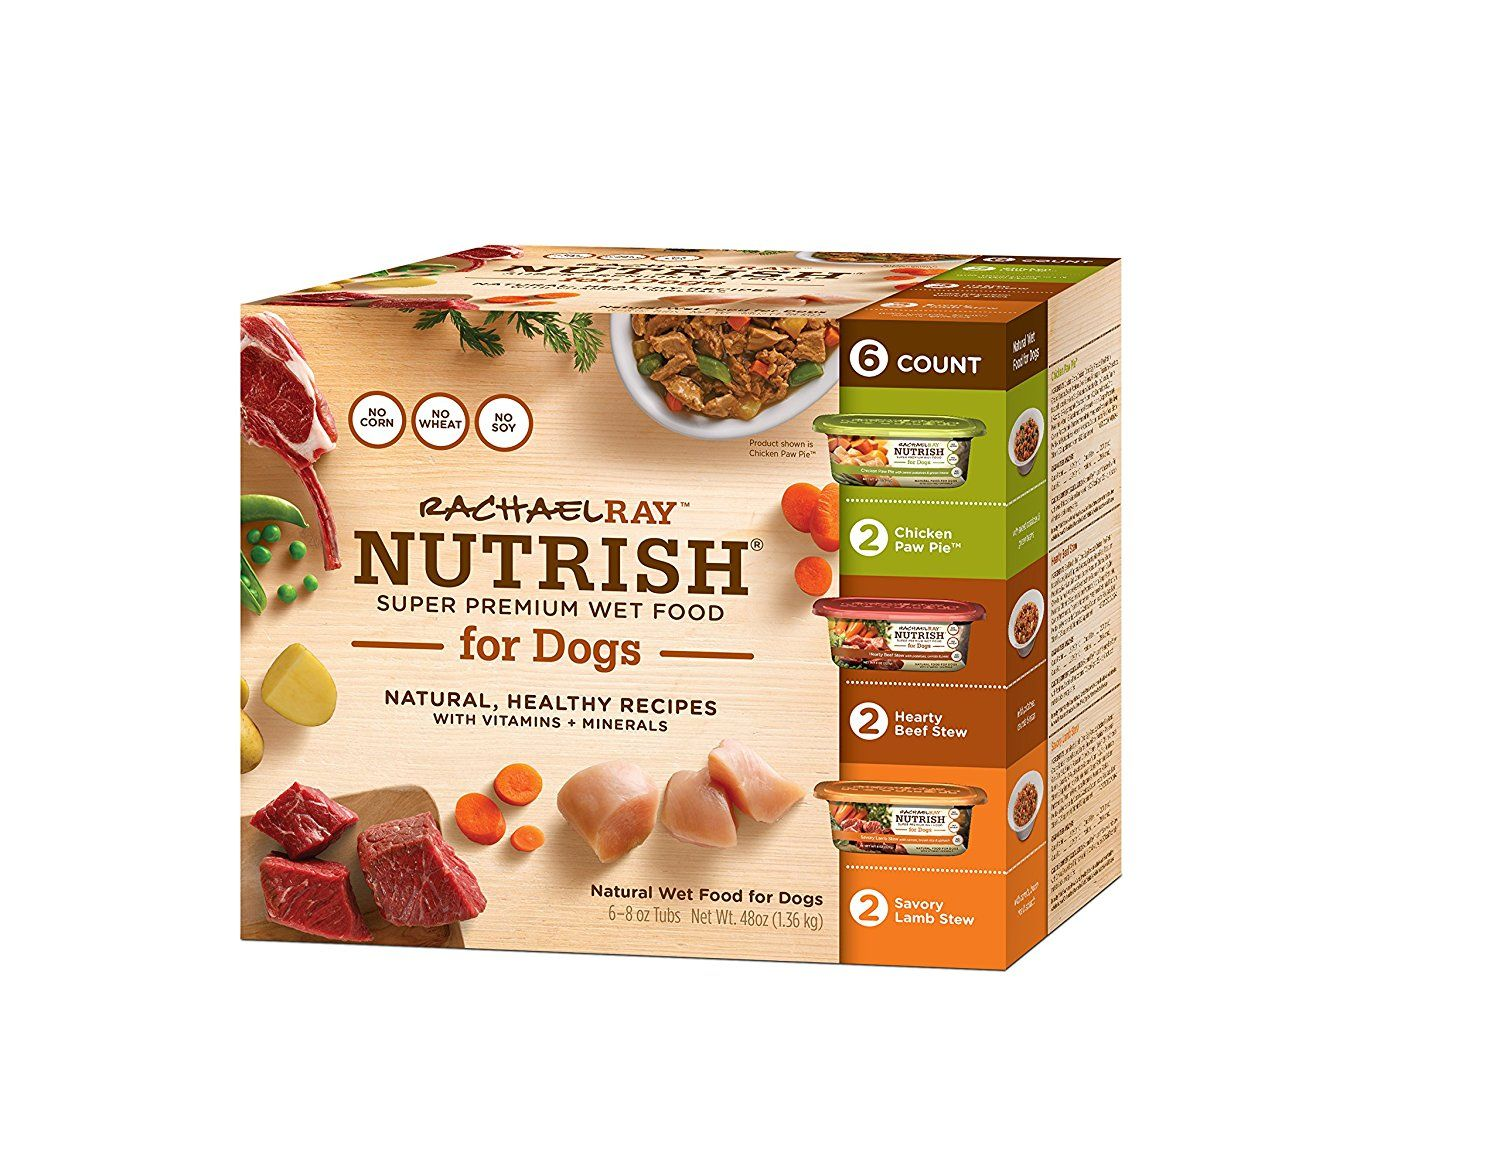 Rachael Ray Nutrish Natural Wet Dog Food Variety Pack Grain Free